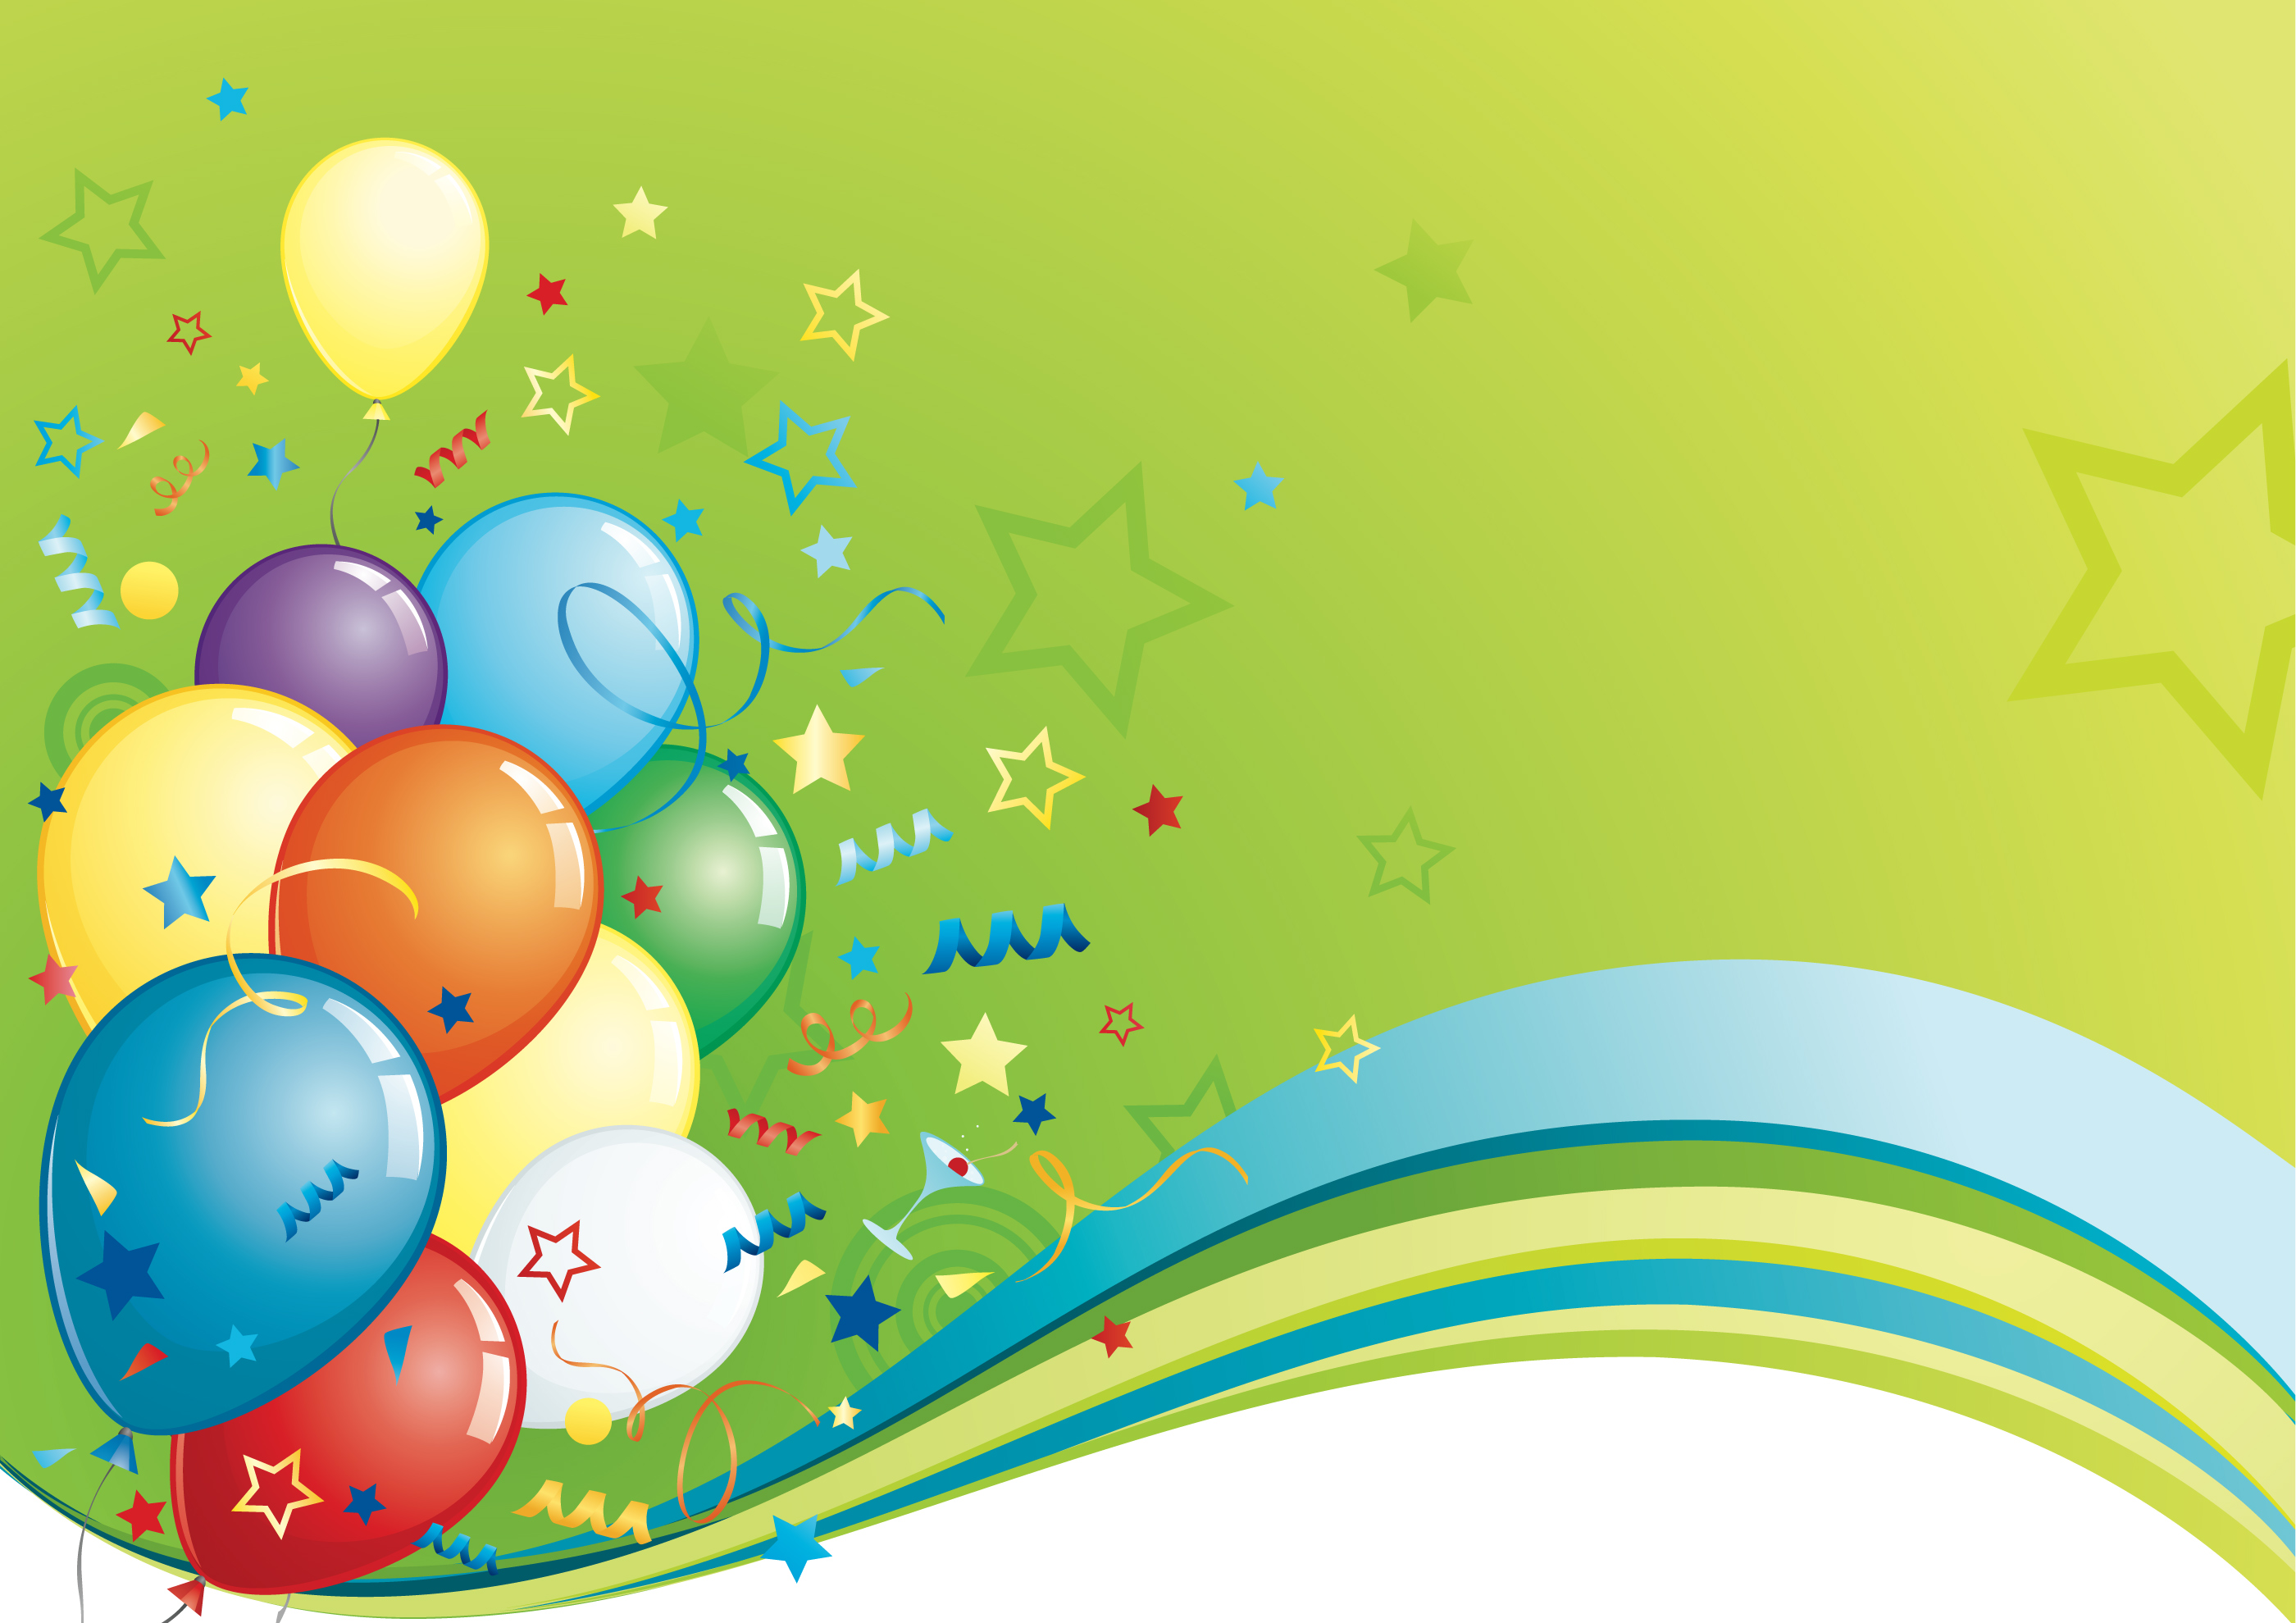 Birthday Party Balloons On Green Background De 14450 Wallpaper 2800x1979